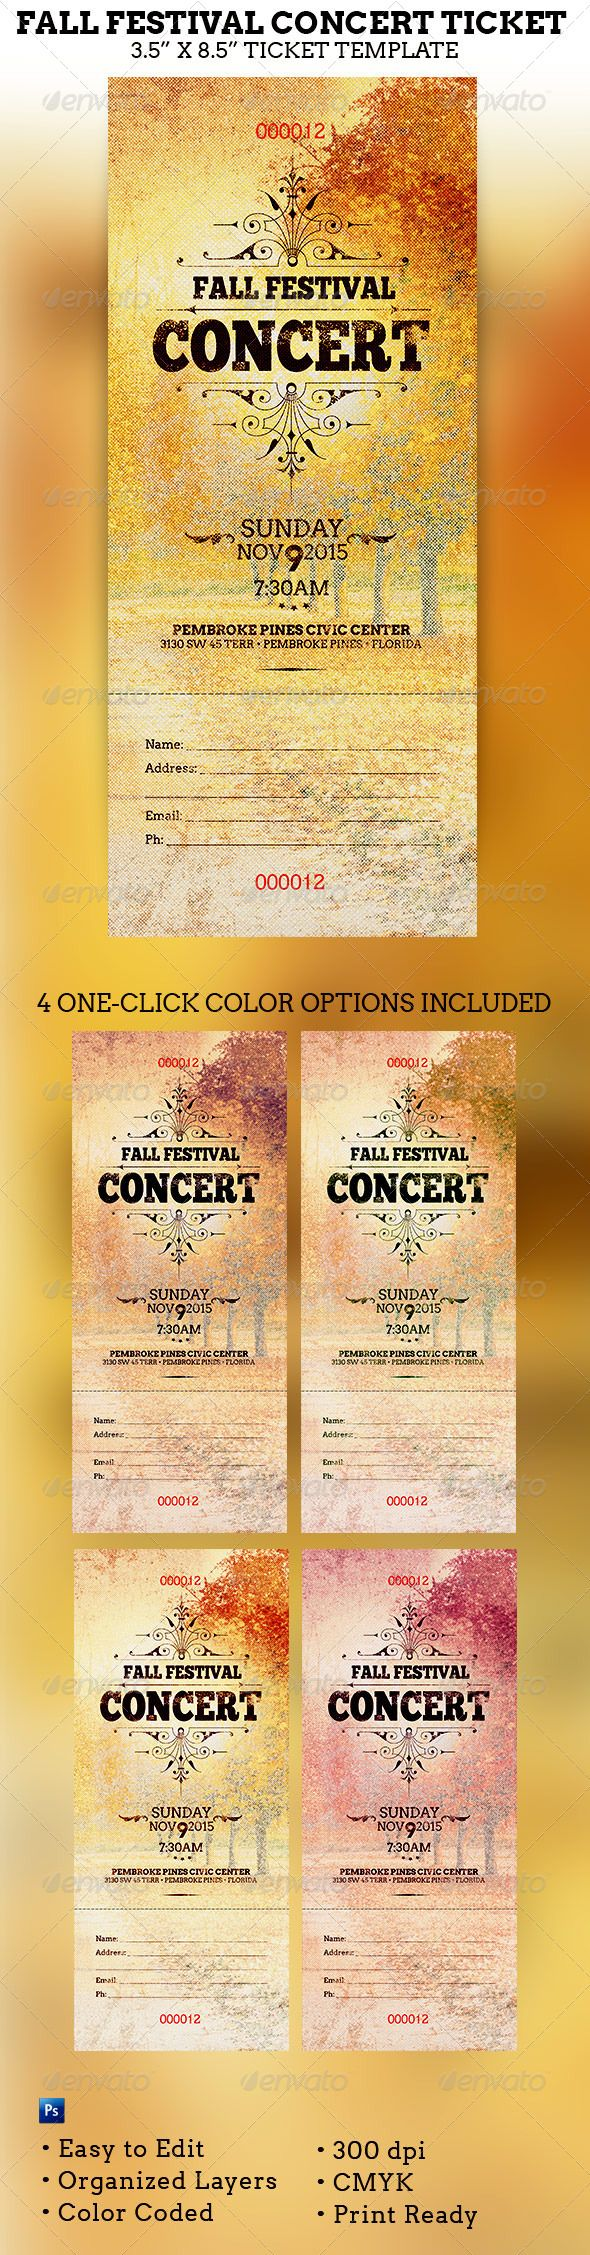 Fall Festival Concert Ticket Template - $4.00